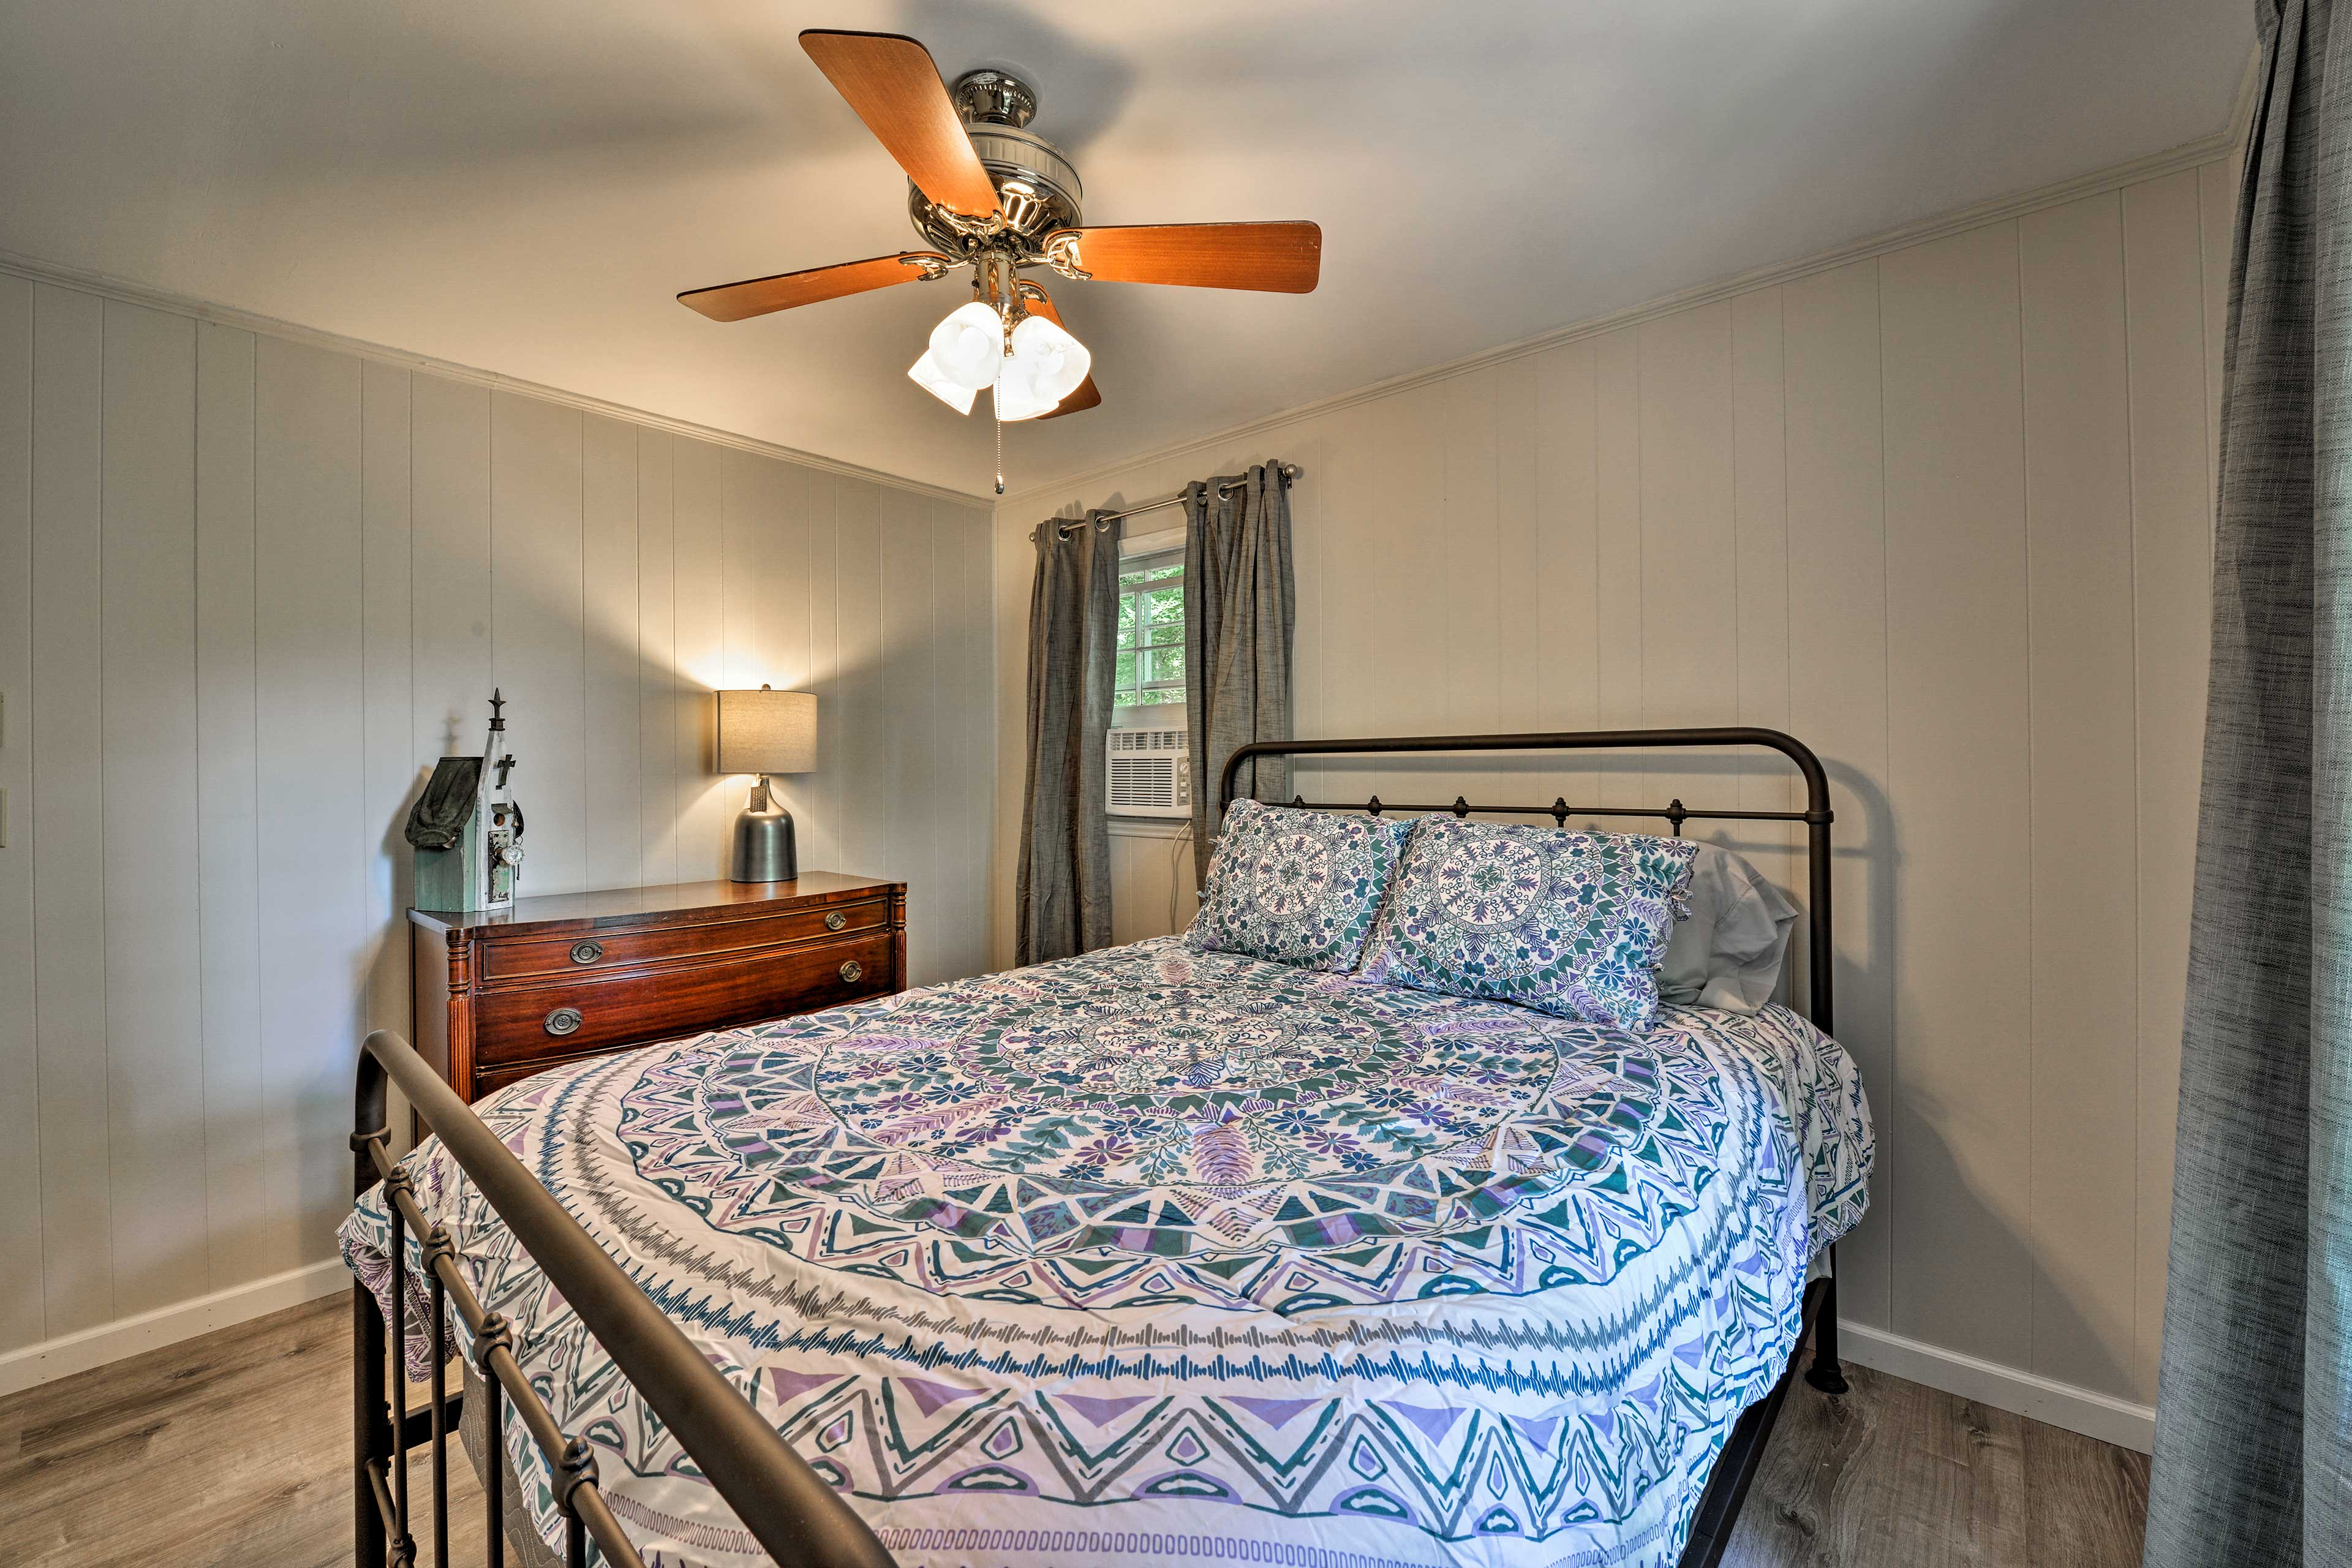 Sink into the queen-sized bed in the first bedroom.